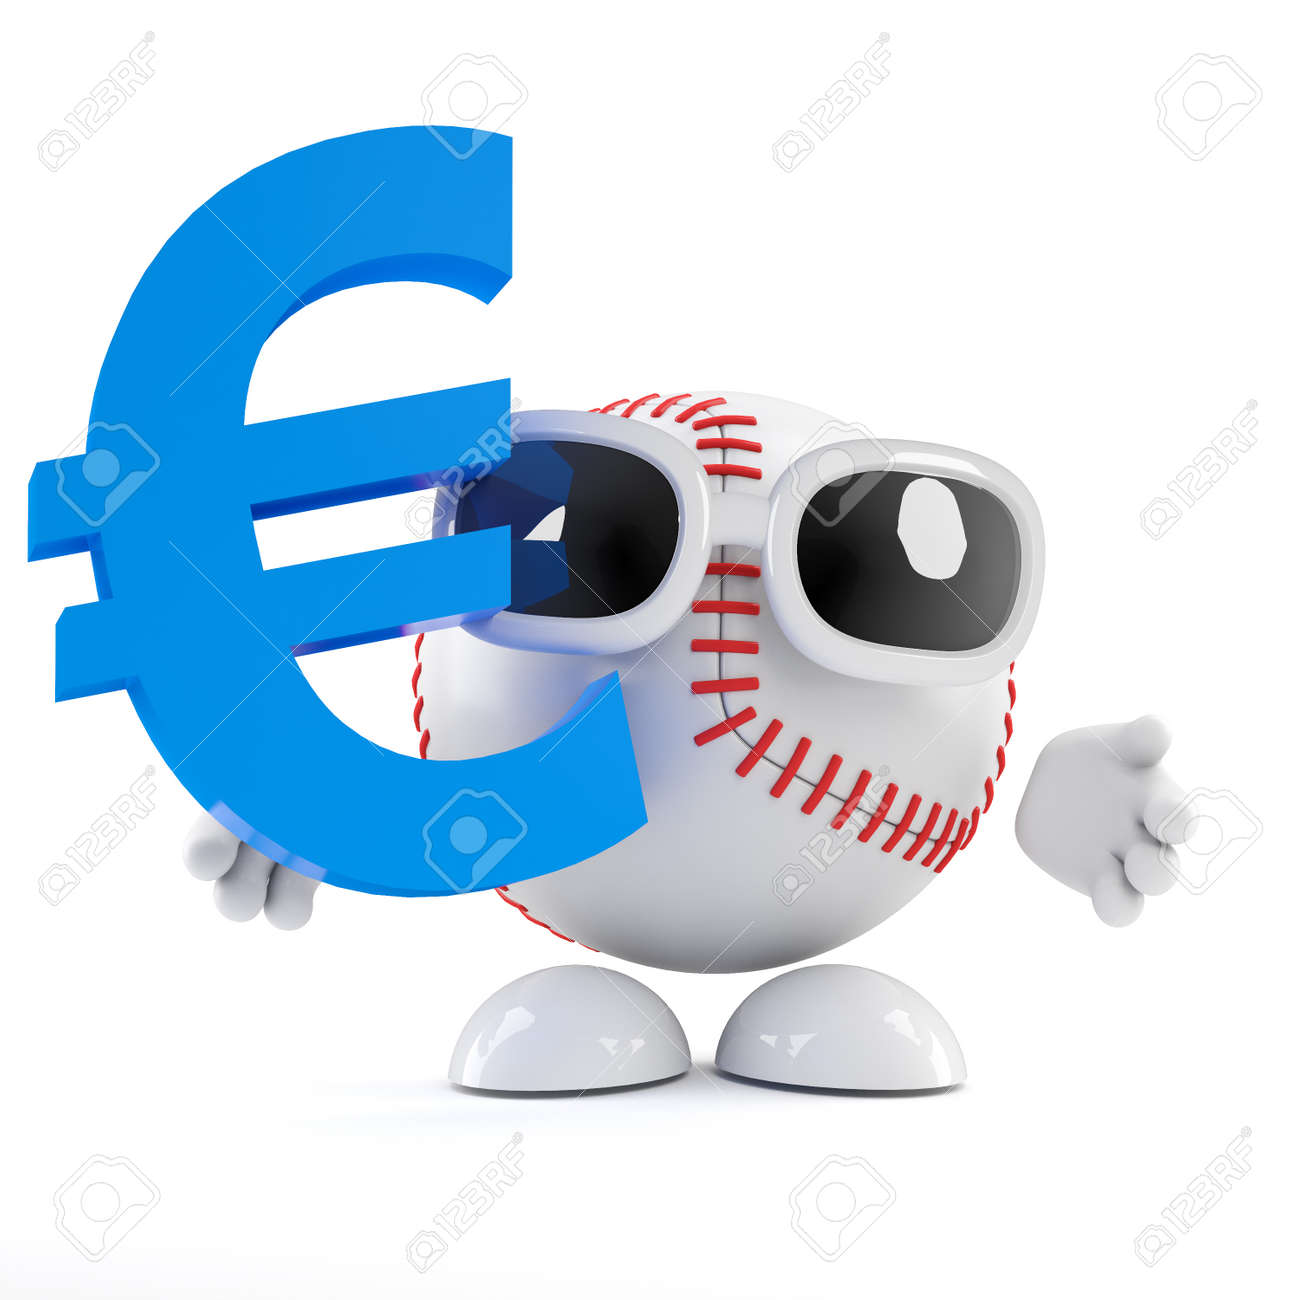 3d Render Of A Baseball Character With A Euro Currency Symbol Stock